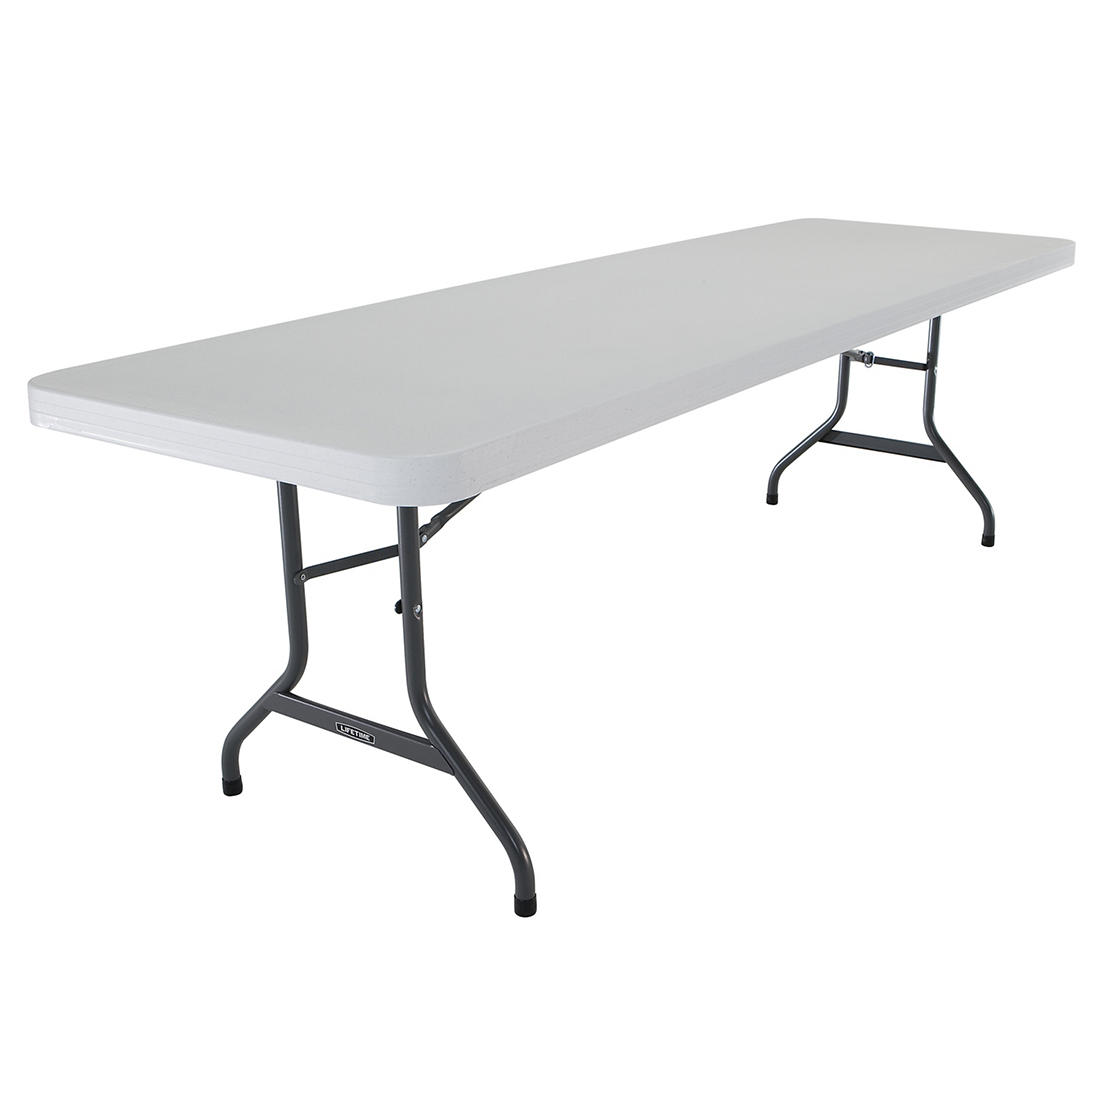 Lifetime 8 Commercial Folding Tables 21 Pk White Granite